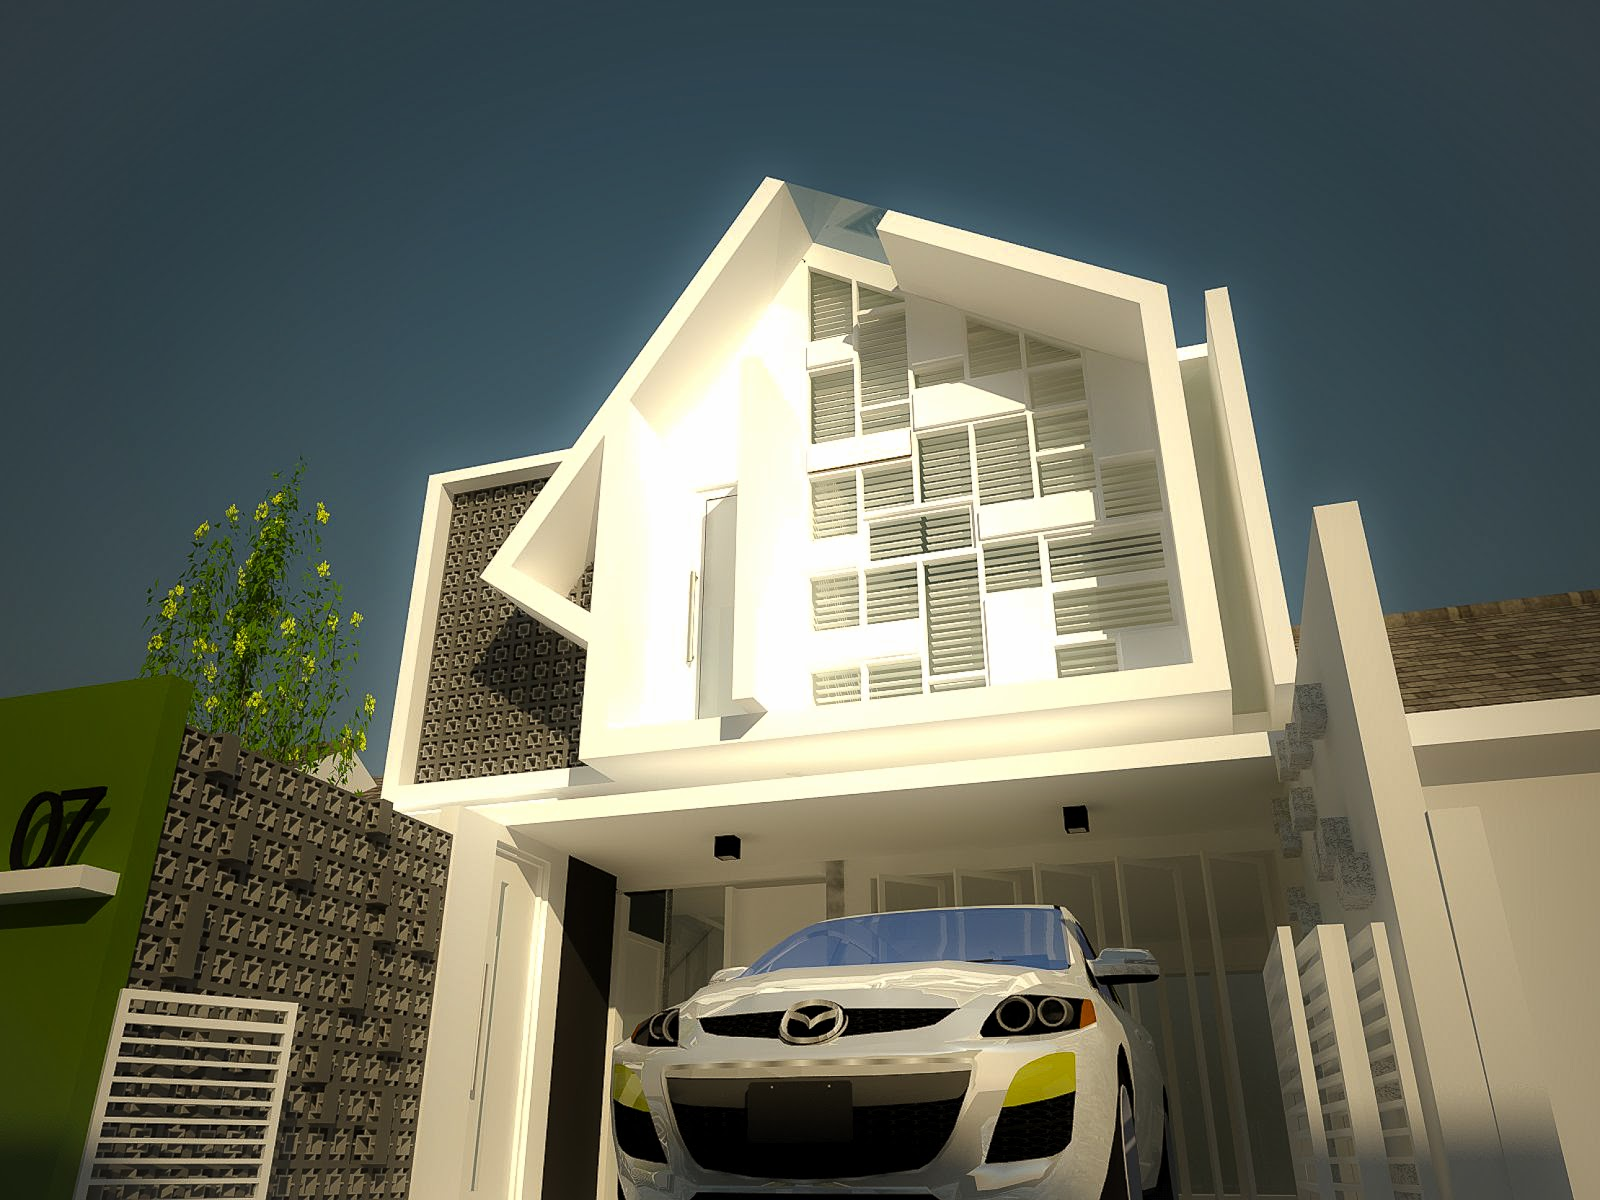 Modern Muslim House With Unique Calligraphic Facade | My design Homes - Indonesia Modern House Design